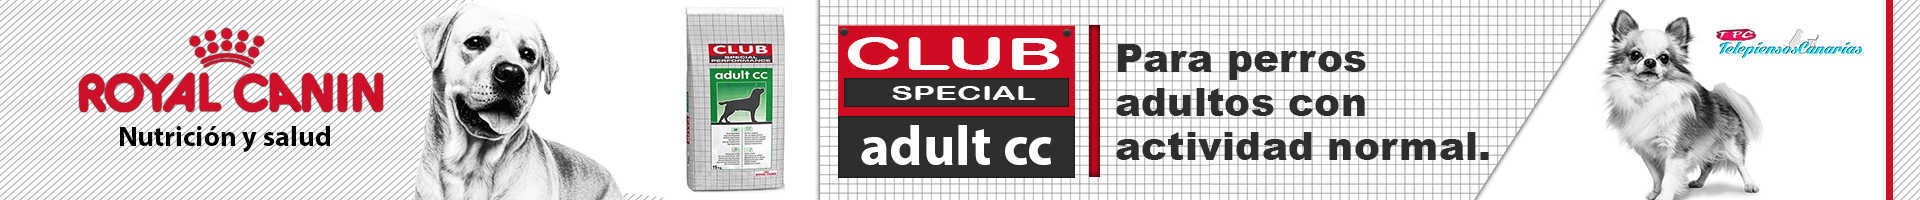 Royal Canin club special performance adult CC